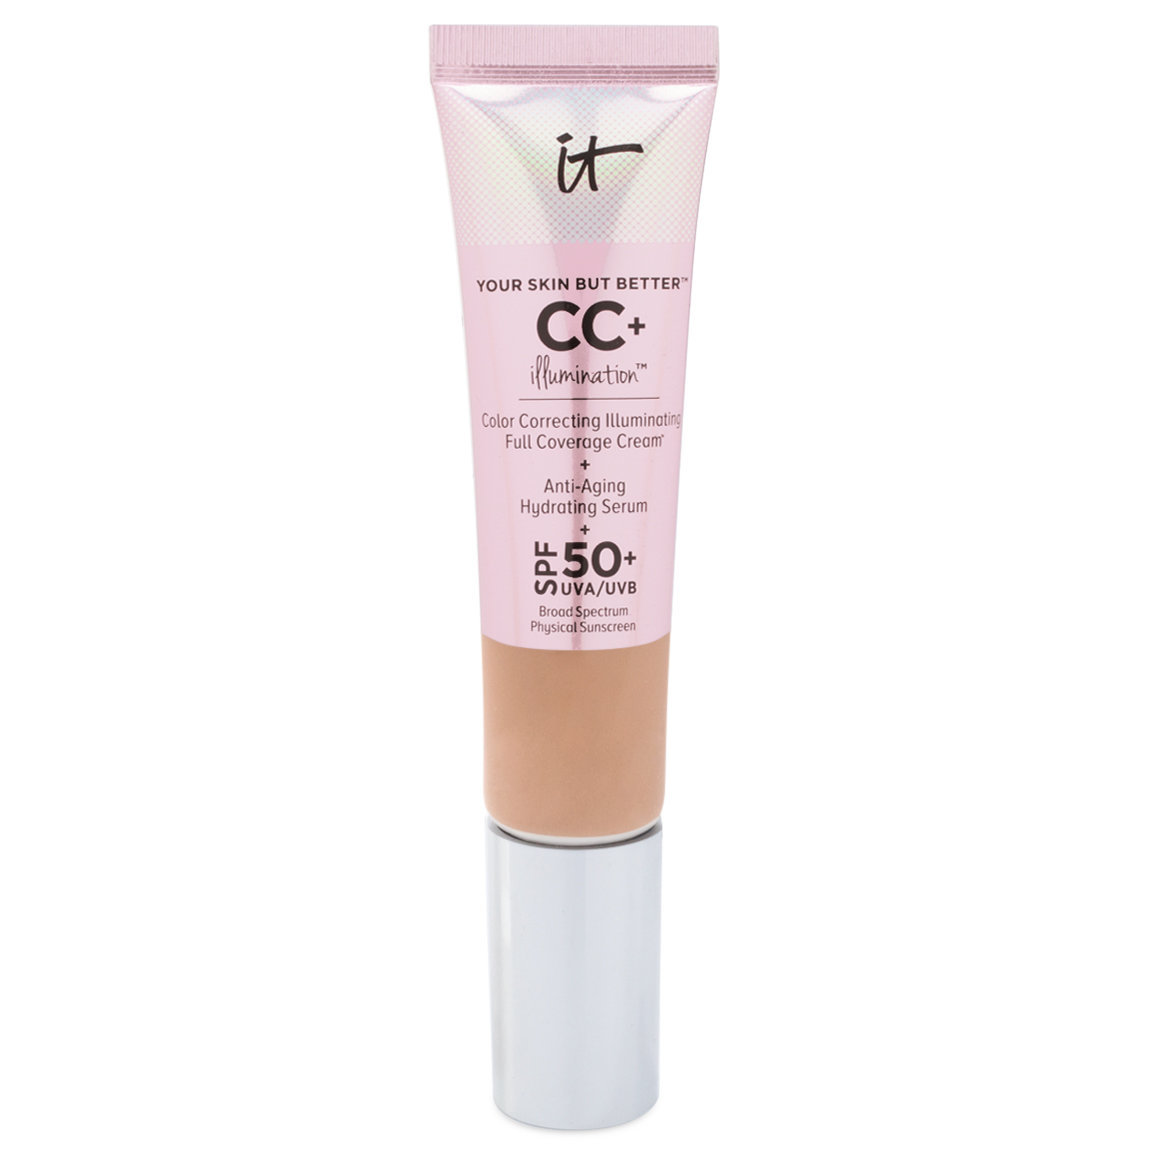 IT Cosmetics  Your Skin But Better CC+ Illumination with SPF 50+ Tan